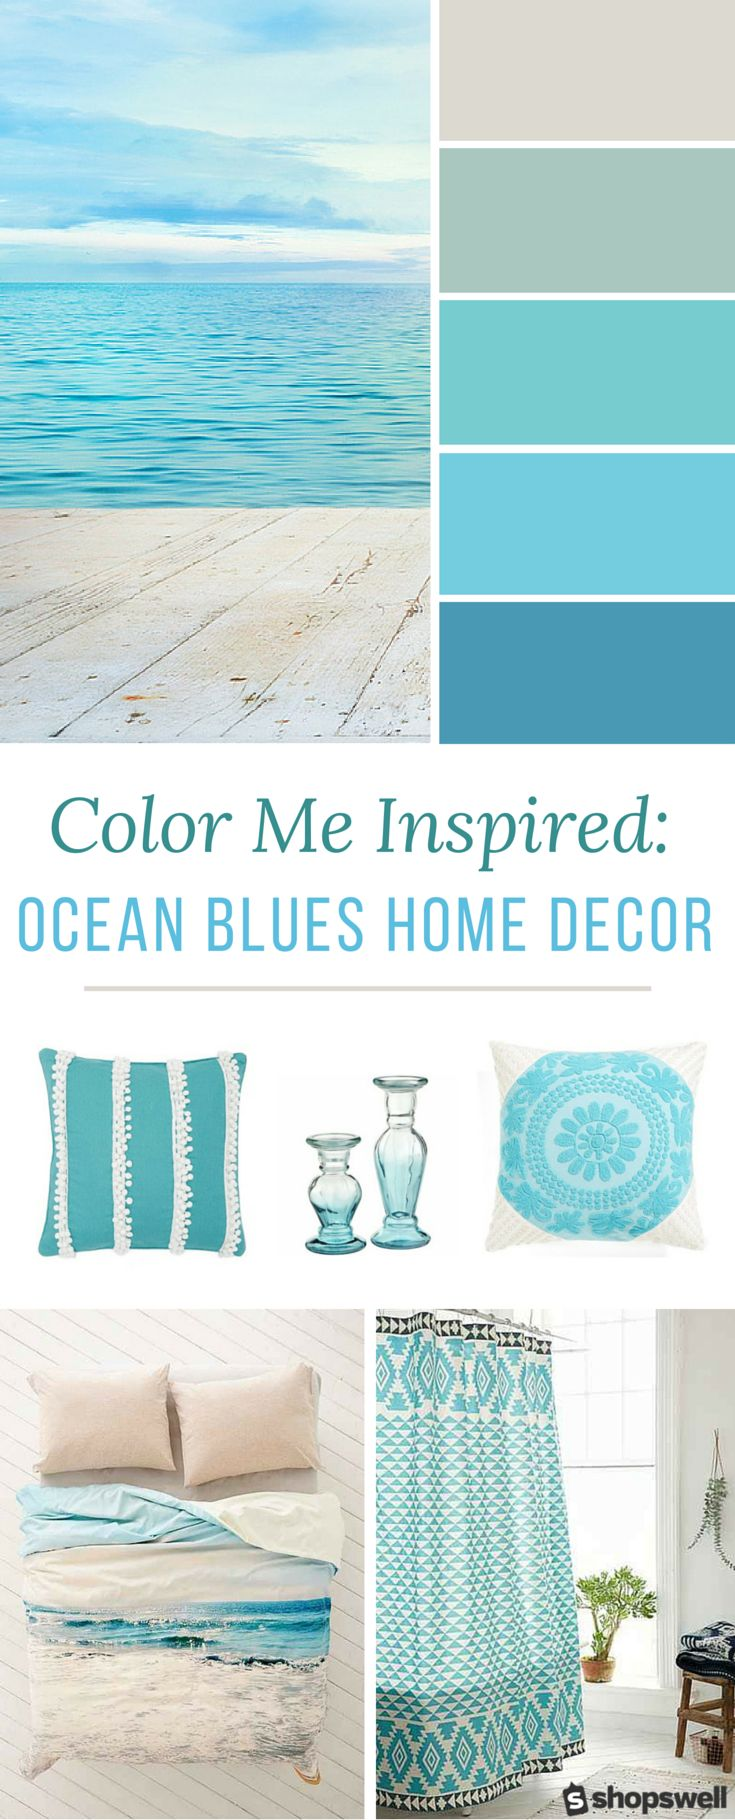 Blue beach bathroom decor - Blue Ocean Tones Are The Inspiration Behind This Summer Home Decor Collection Decorate Your Beach